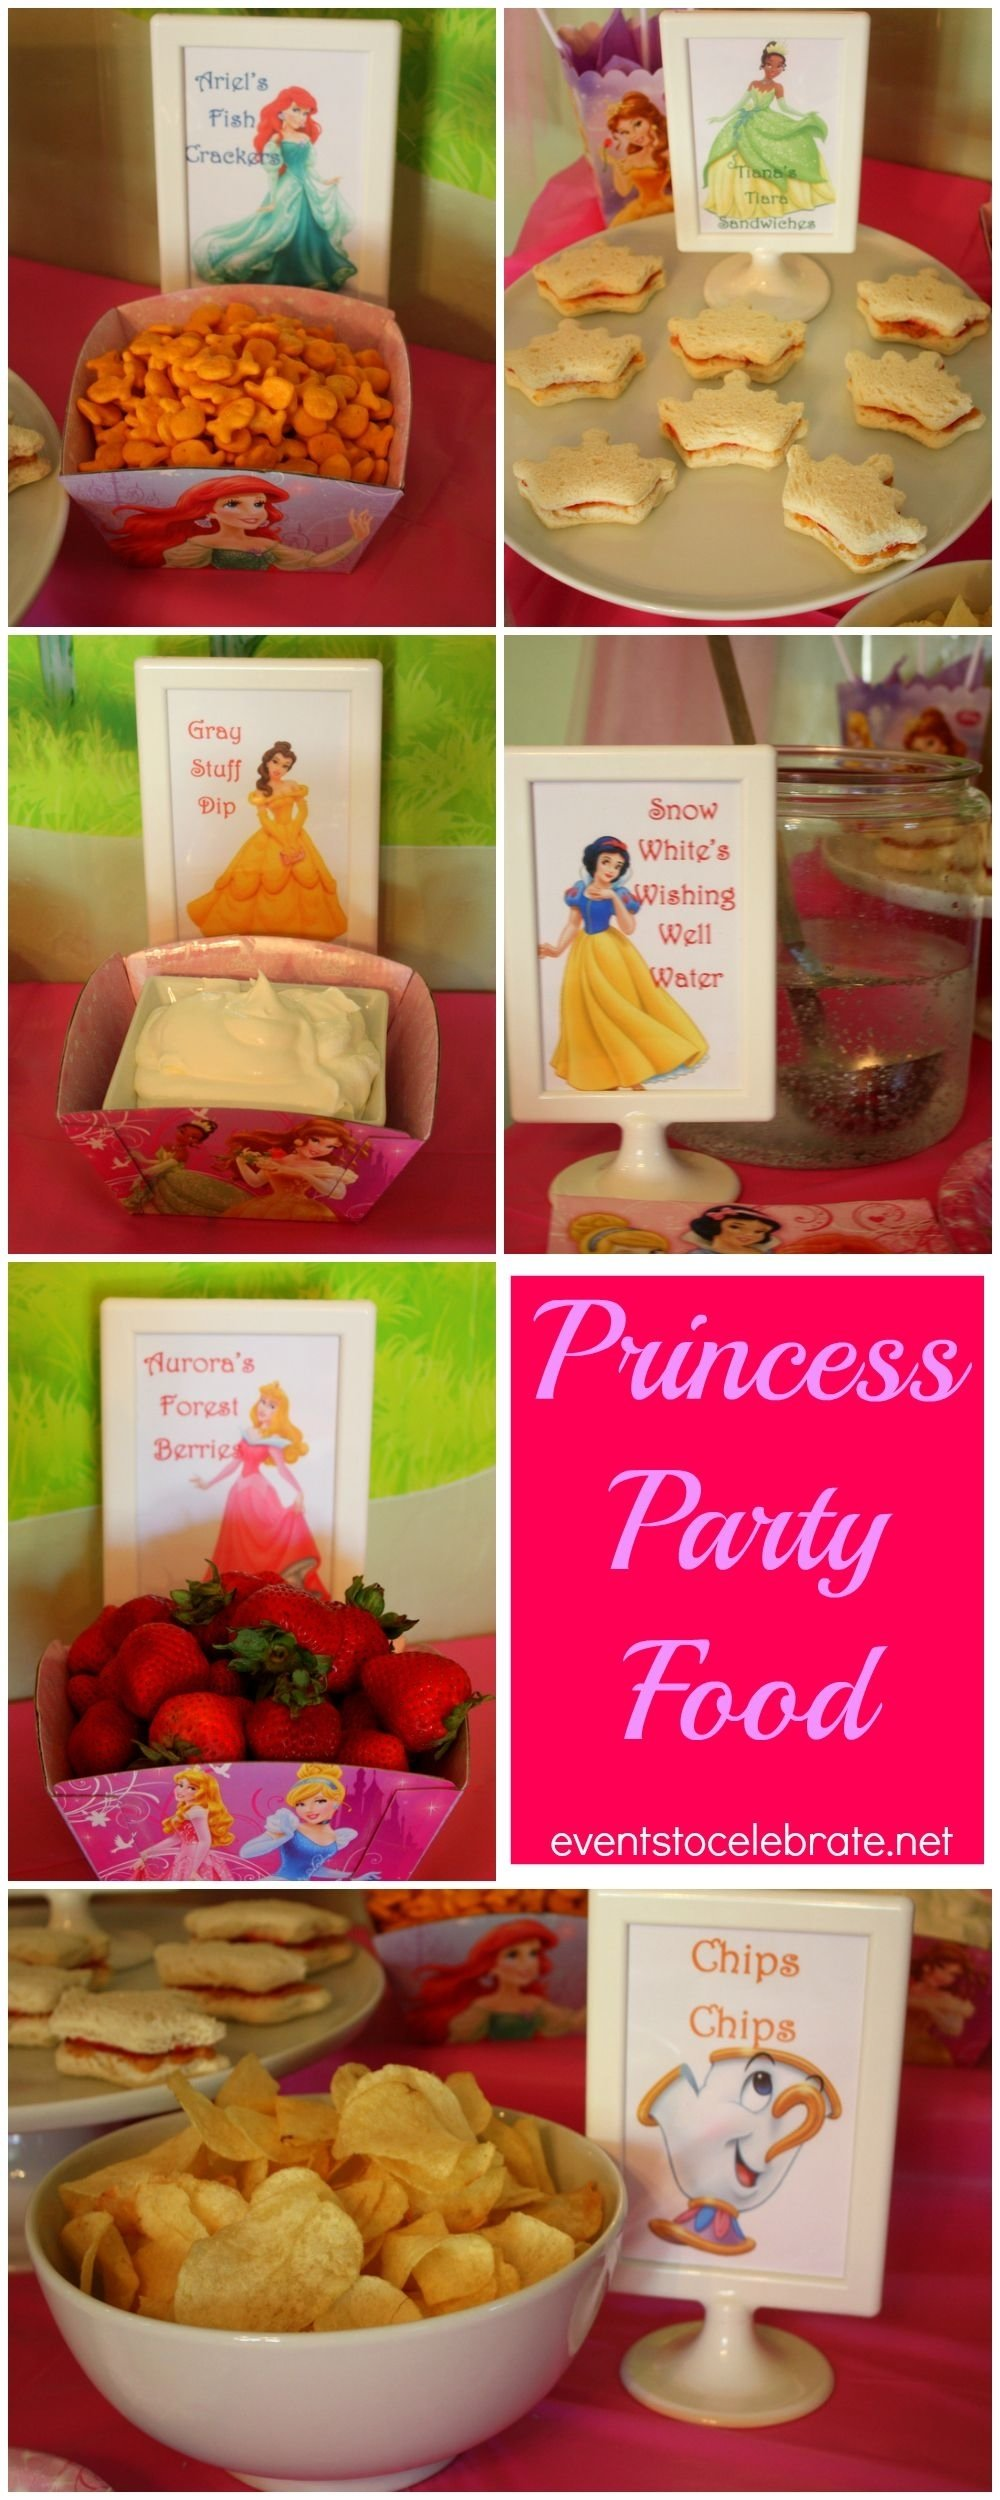 10 Nice Princess Tea Party Food Ideas disney princess birthday party ideas food decorations prince 2